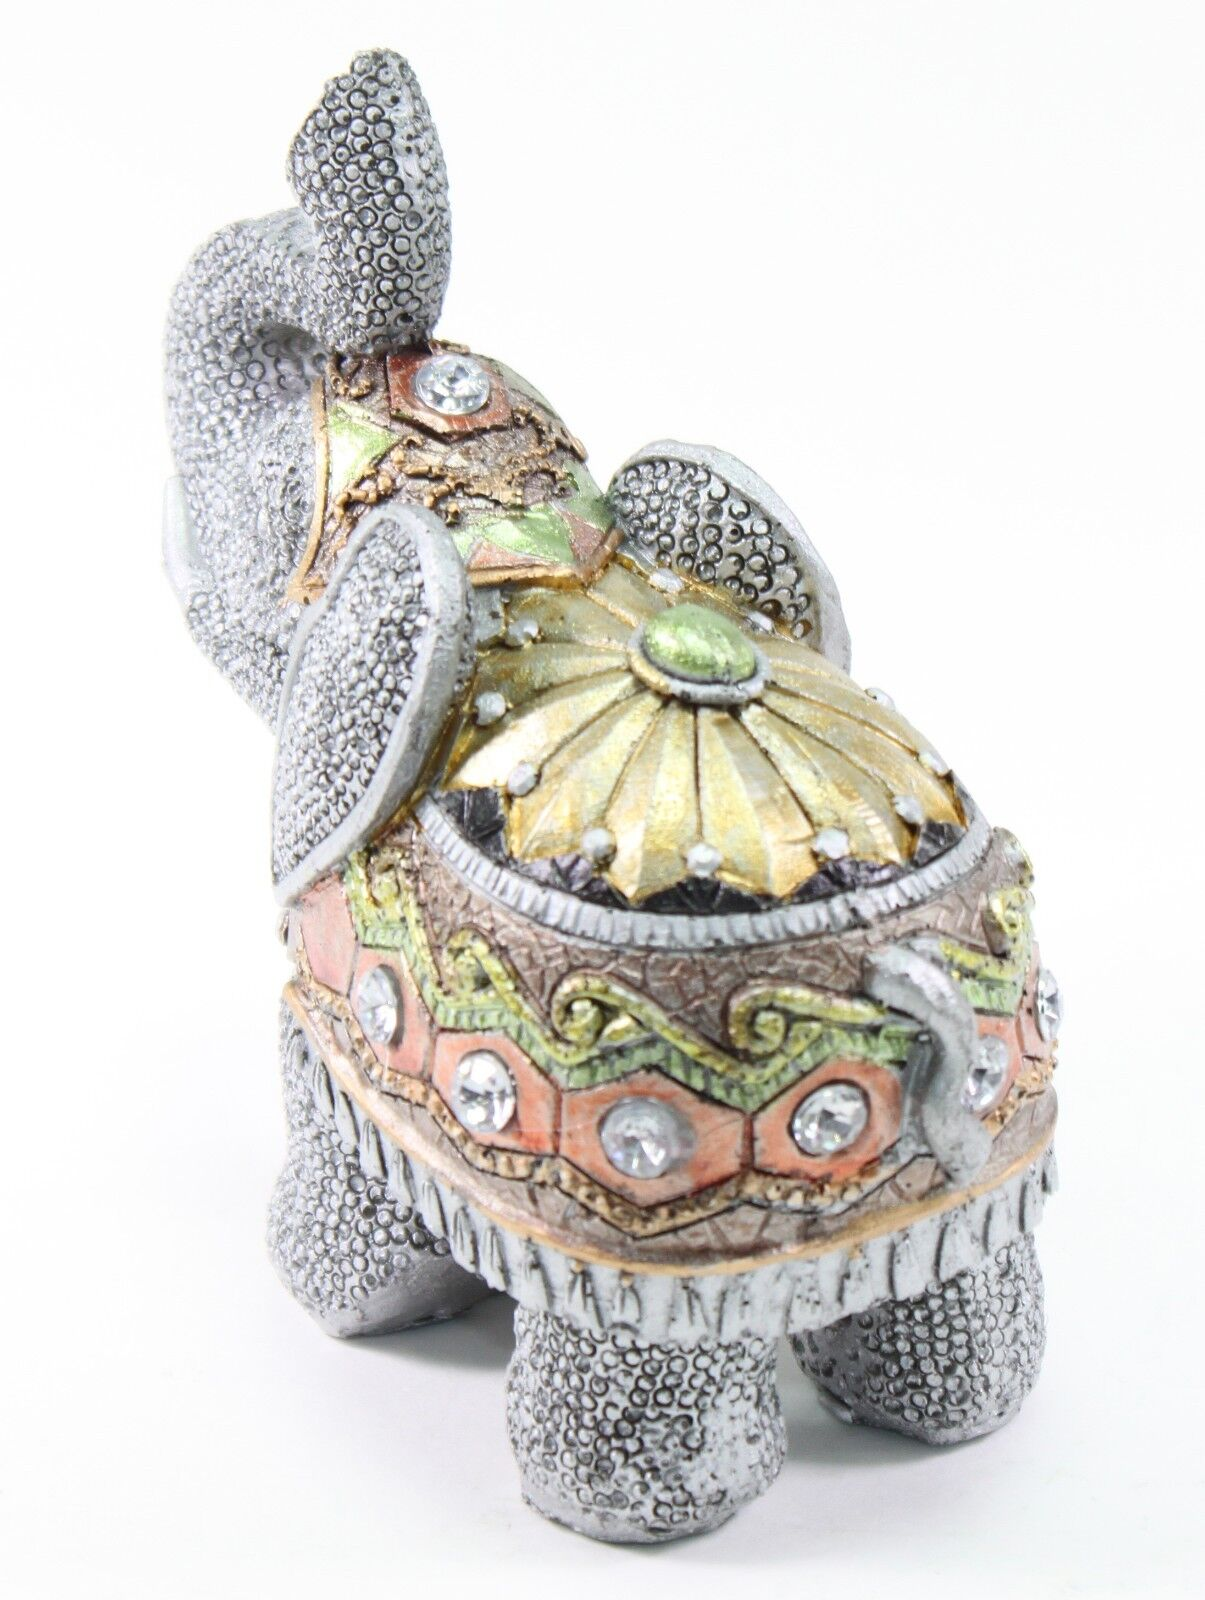 Feng shui 5 gray elephant trunk statue lucky figurine gift home decor ebay Colorful elephant home decor